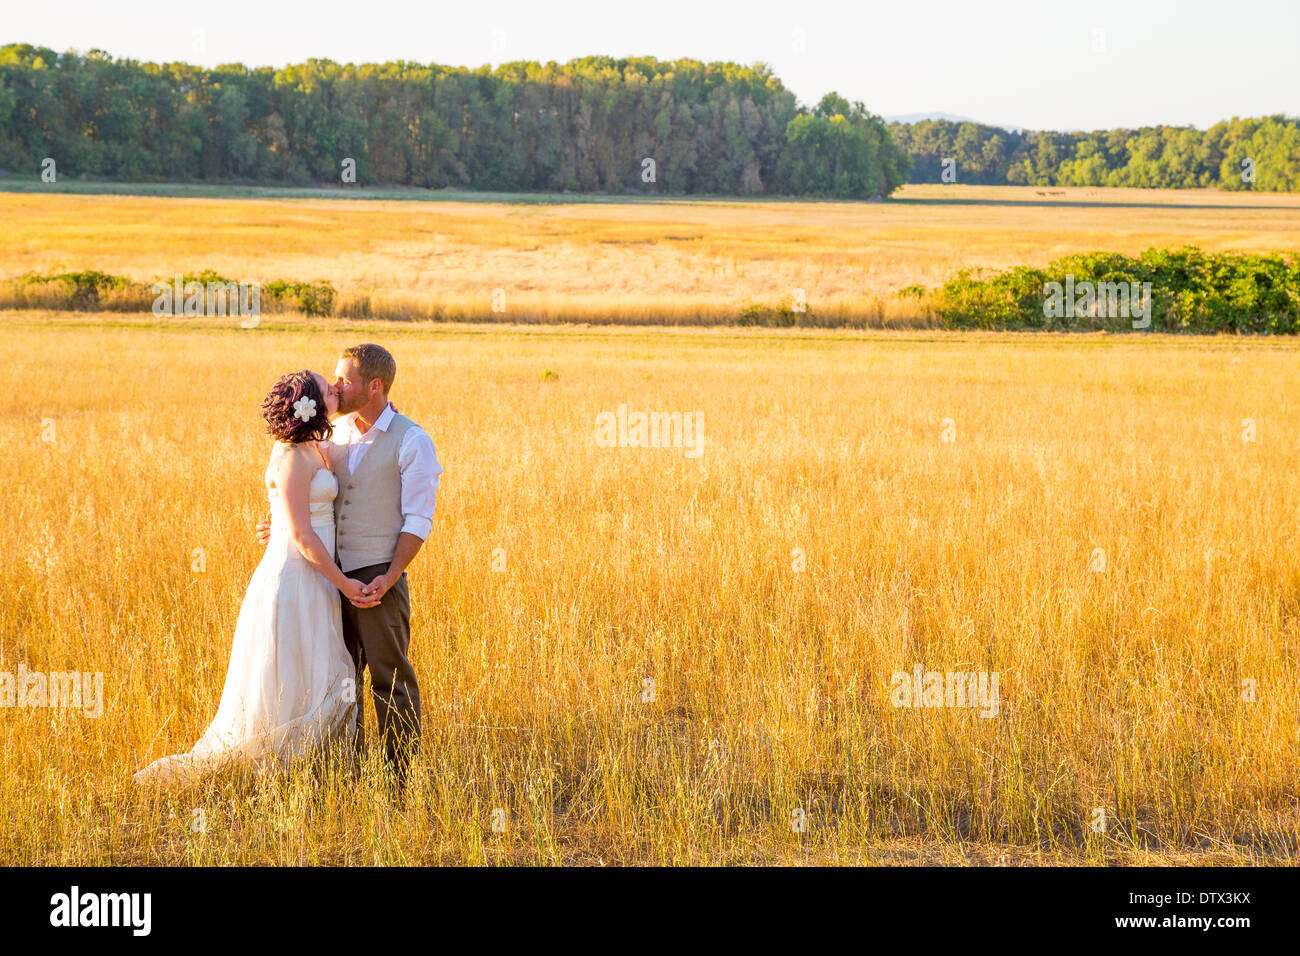 Wedding couple shares a romantic moment in a field or meadow at sunset on their wedding day. - Stock Image